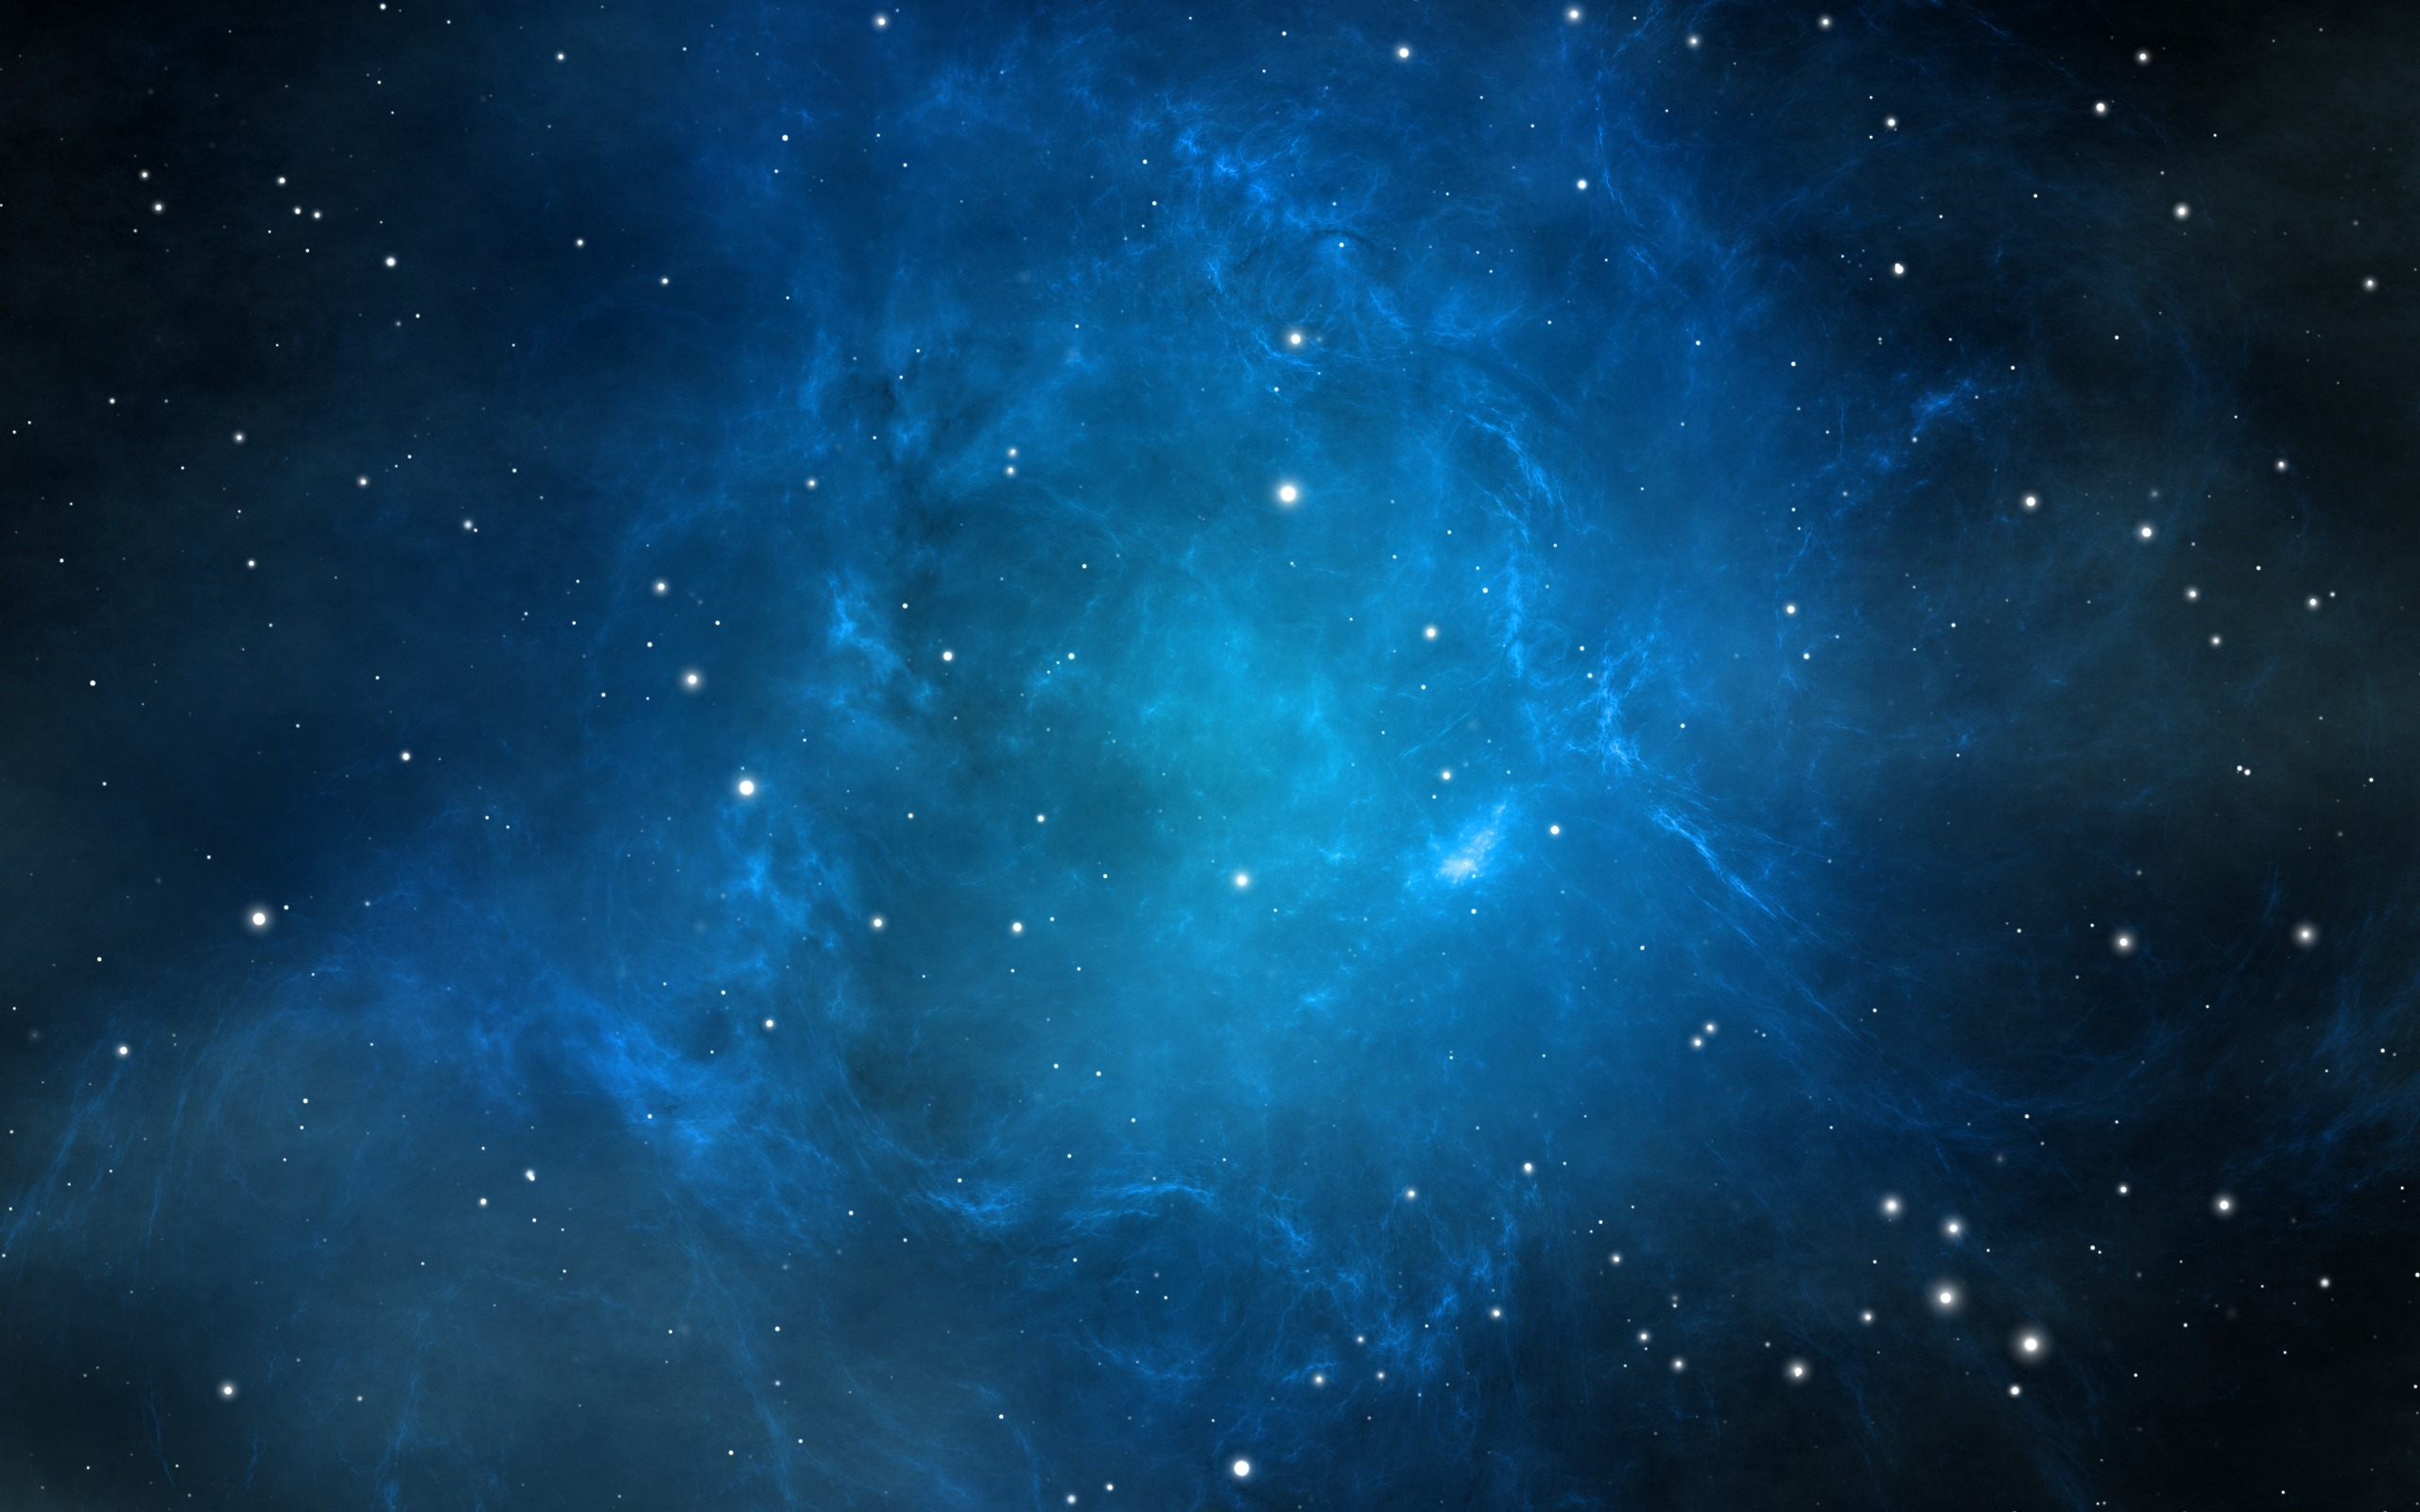 Stars In Blue Background Hd Wallpaper Wallpaper List 2560x1600